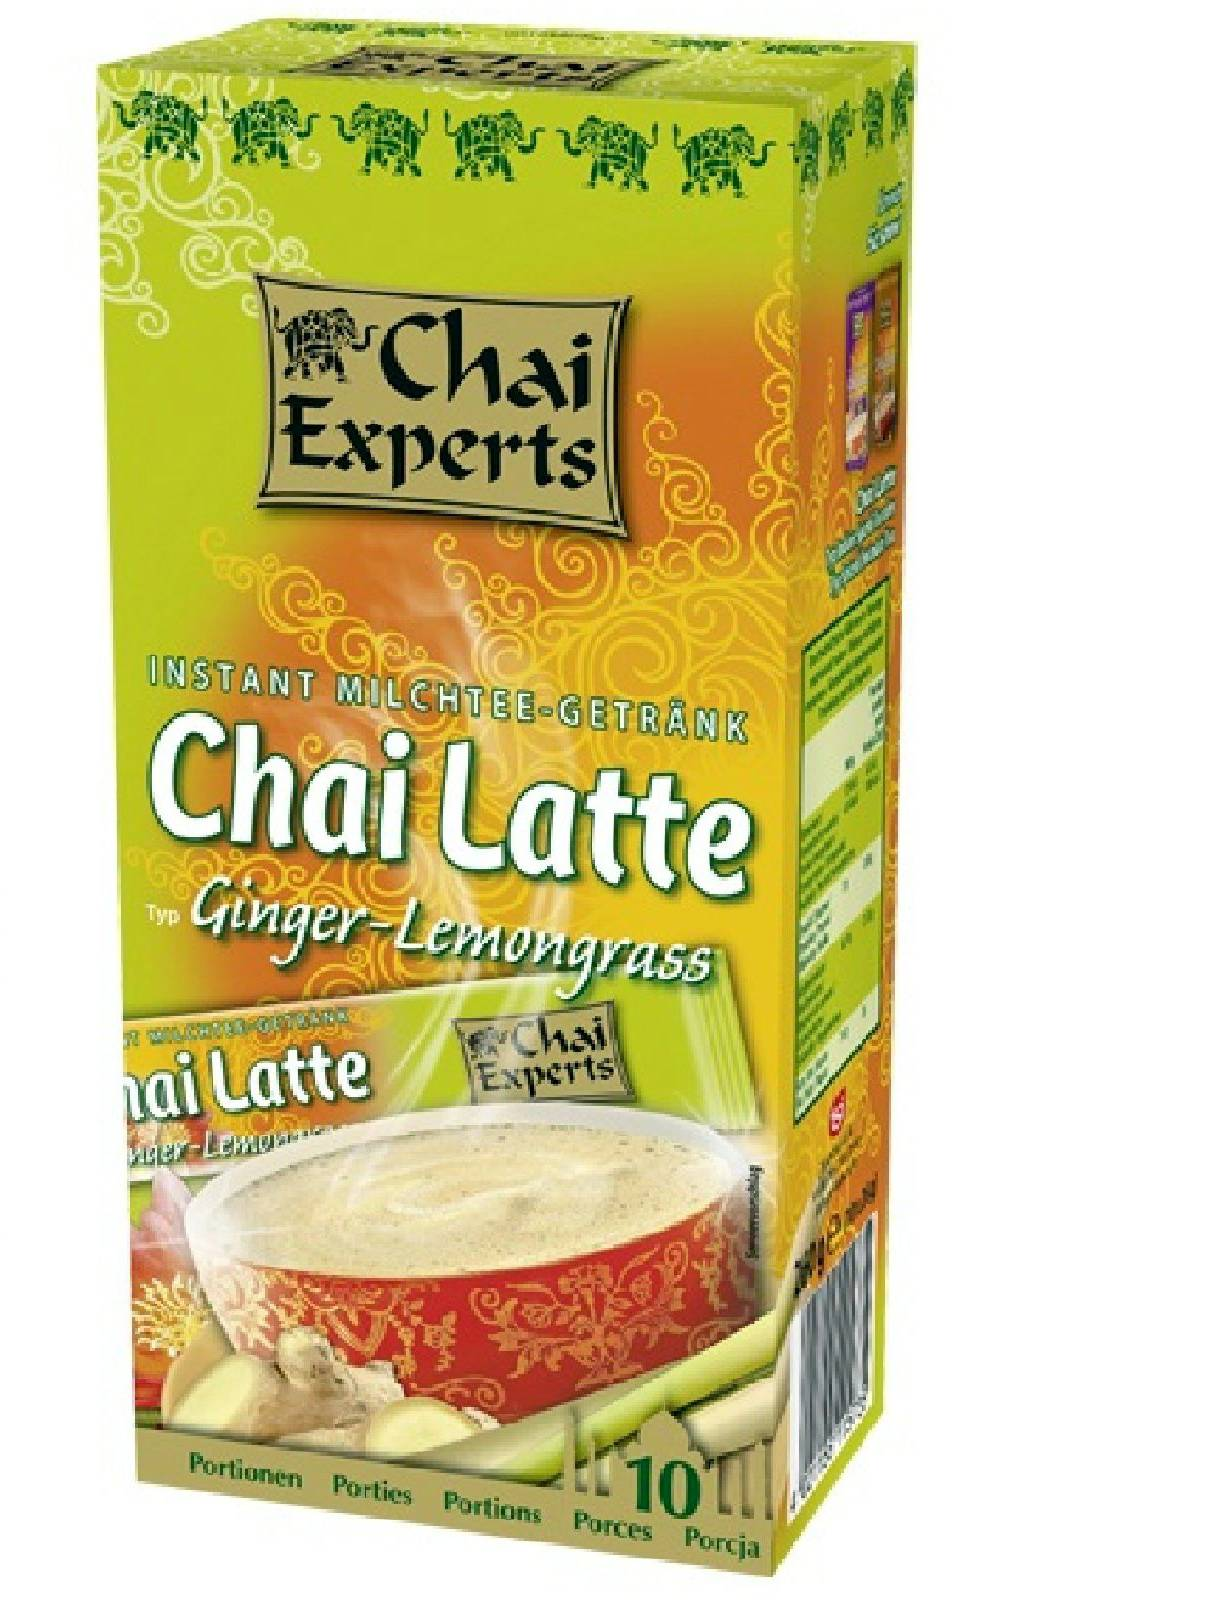 Chai Experts Chai Latte The Ginger Lemongrass 10 x 26g